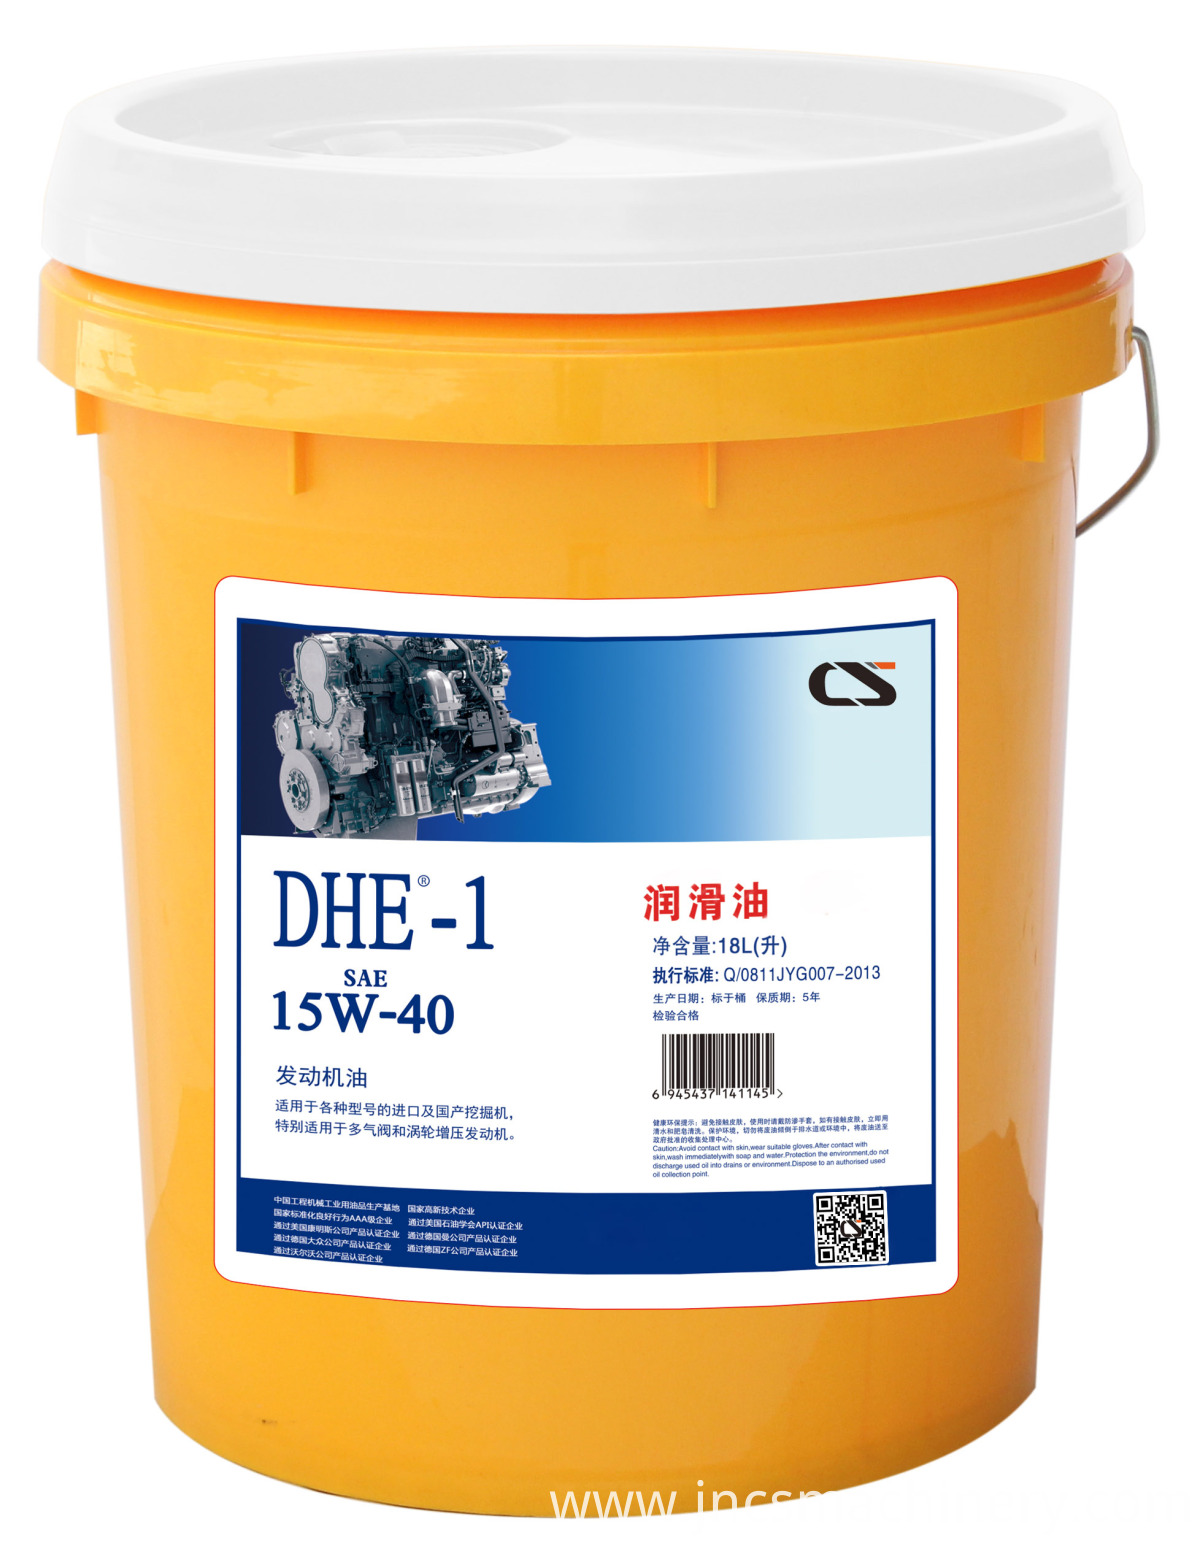 engine oil,lube oil DHE-1 SAE 15W-40